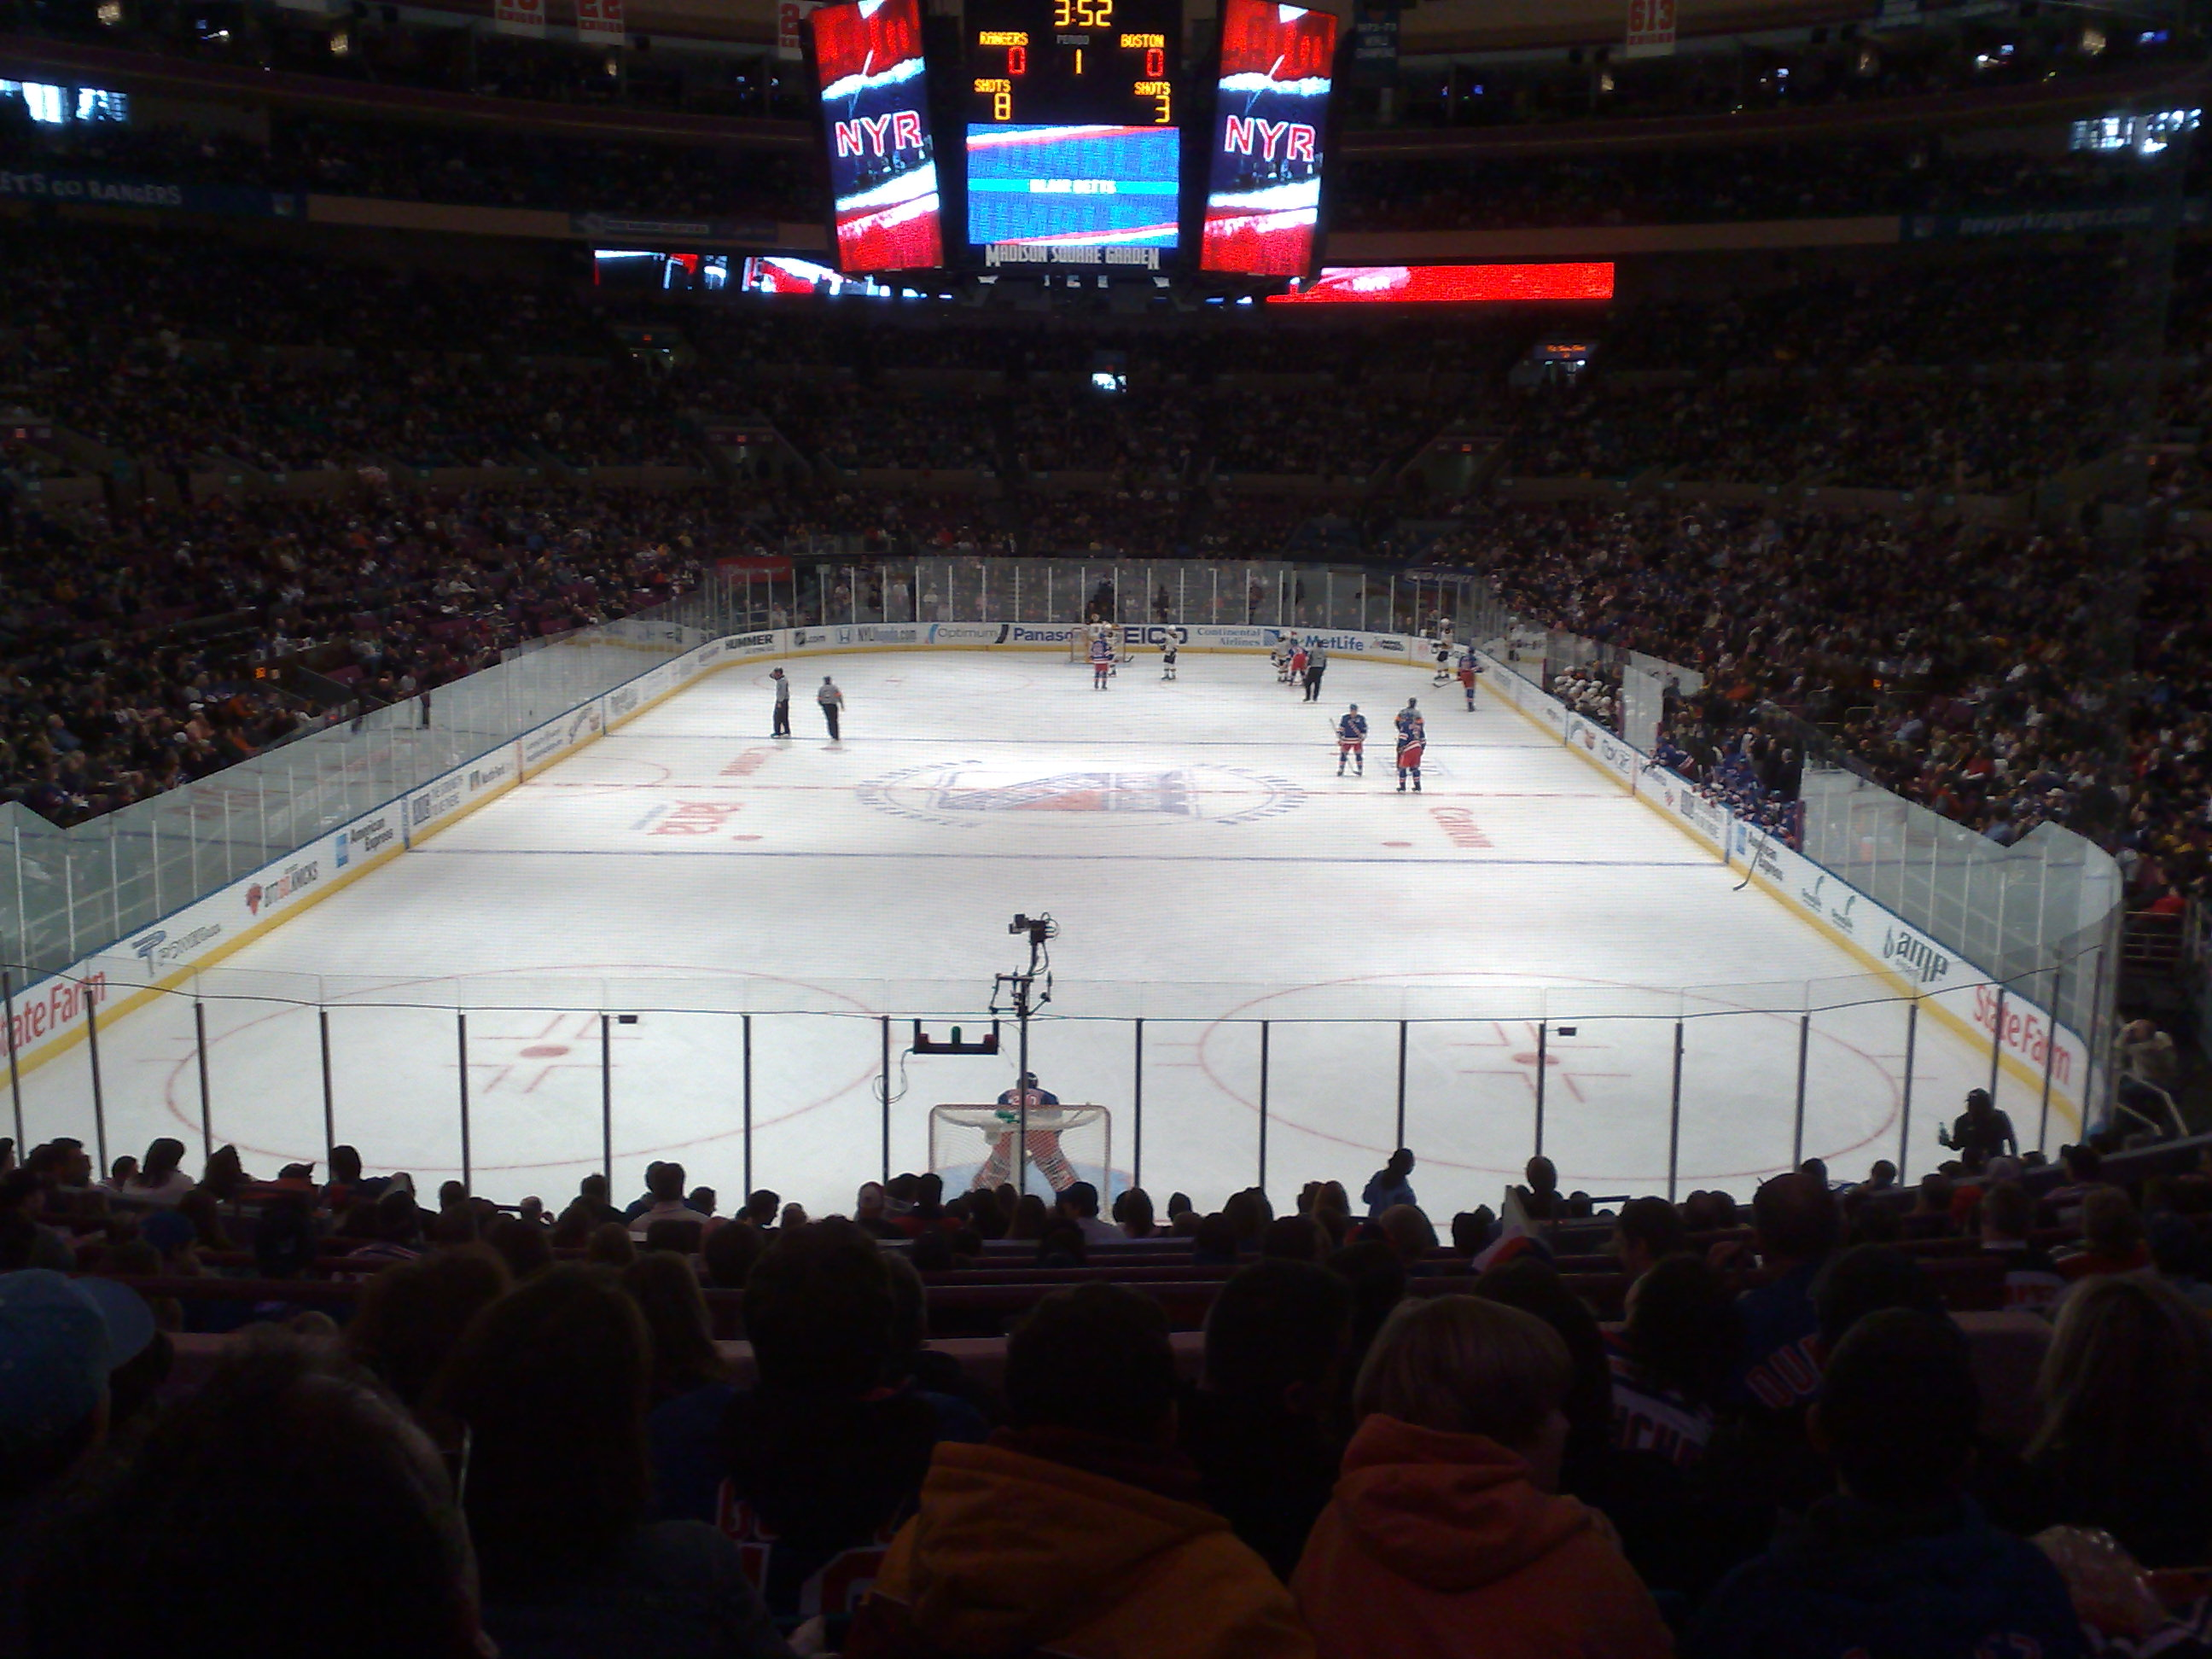 File:Ice Hockey Game   Madison Square Garden   Boston Vs New York